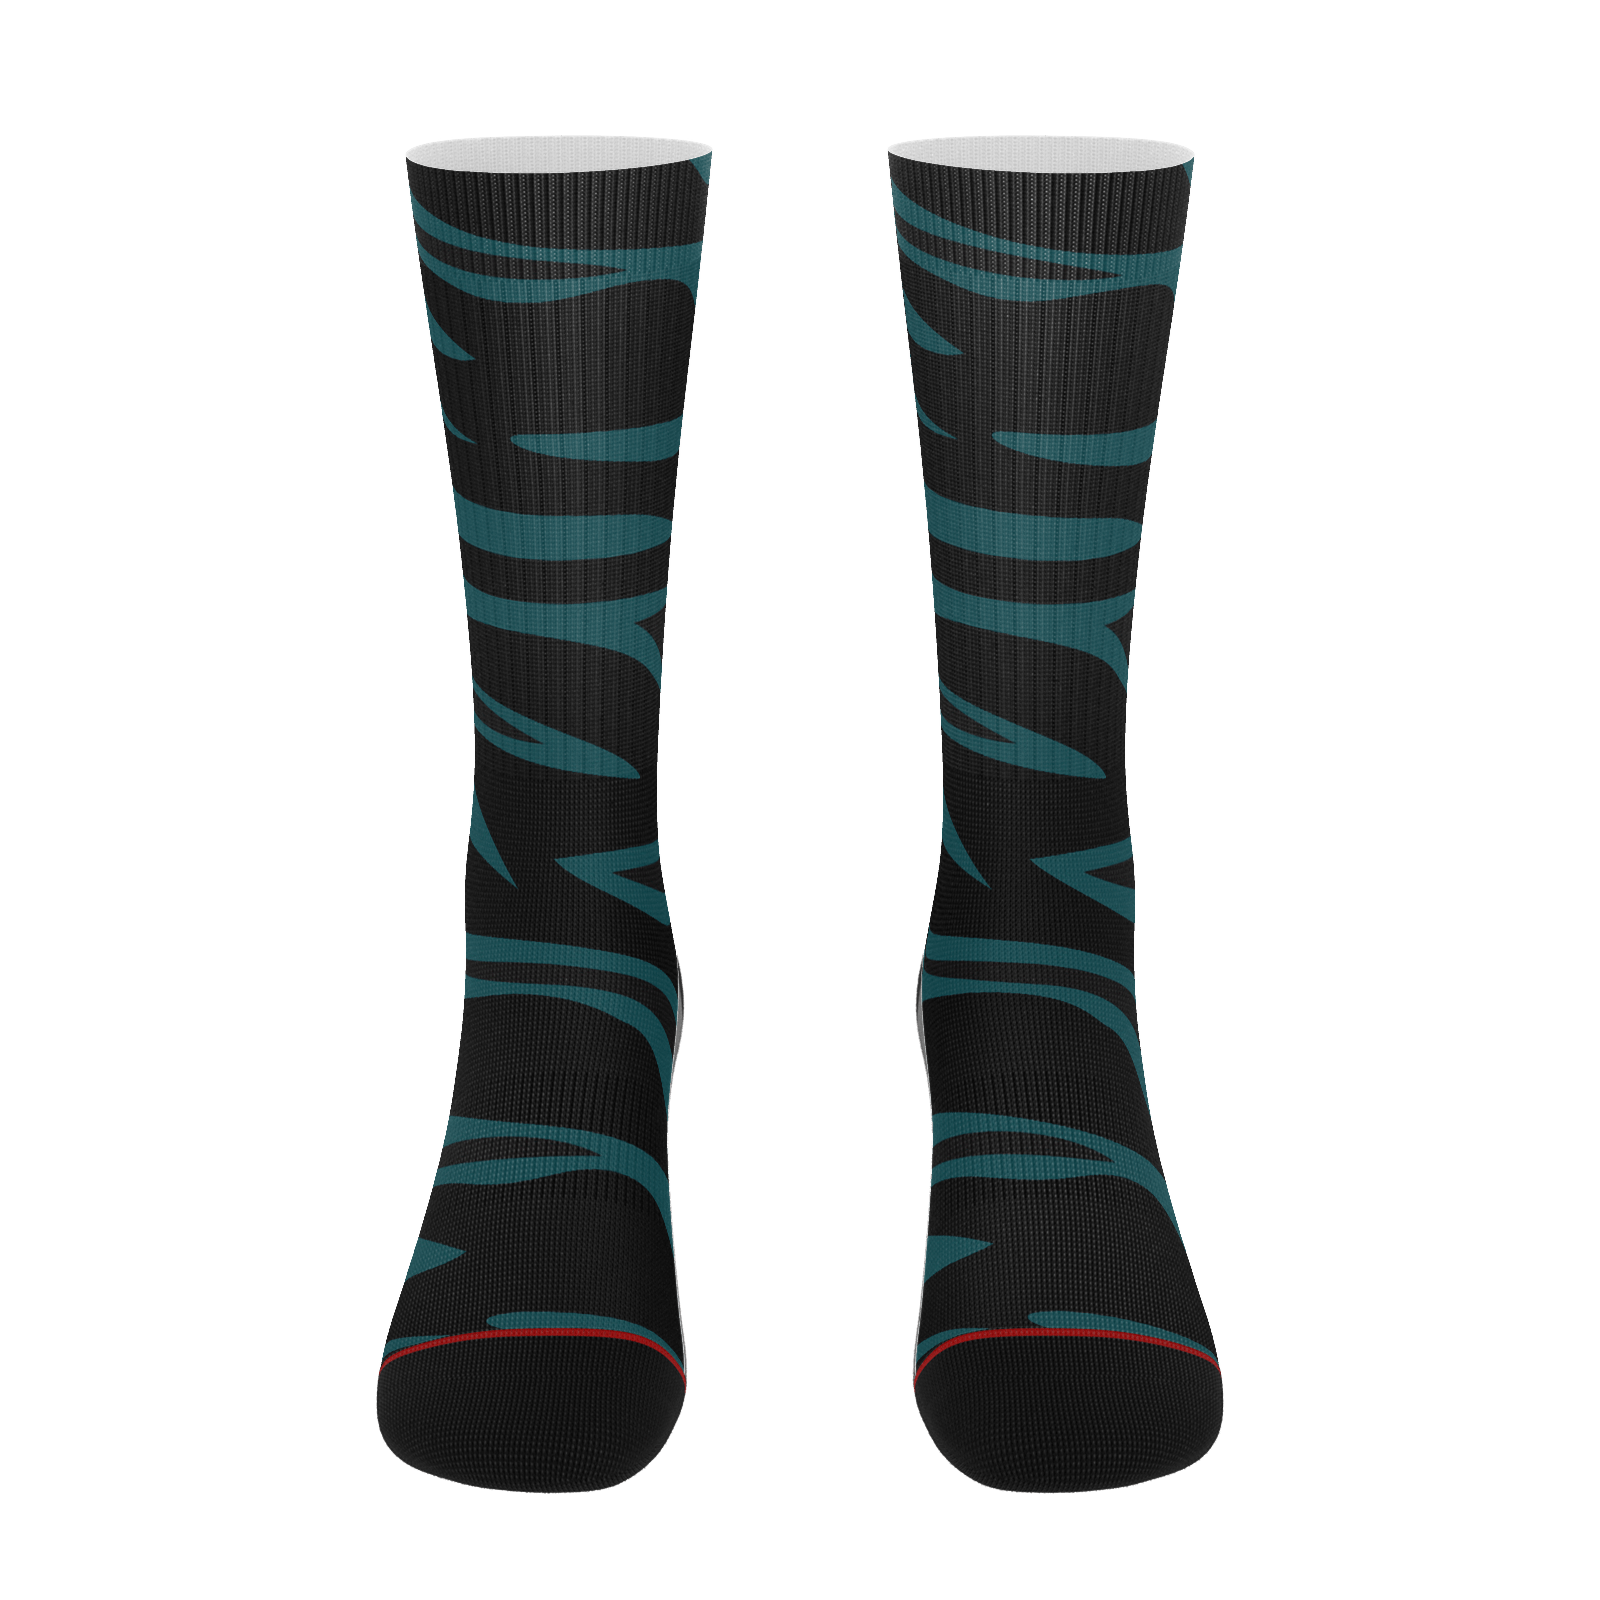 Find Your Coast Wavvy Socks - Find Your Coast Supply Co.